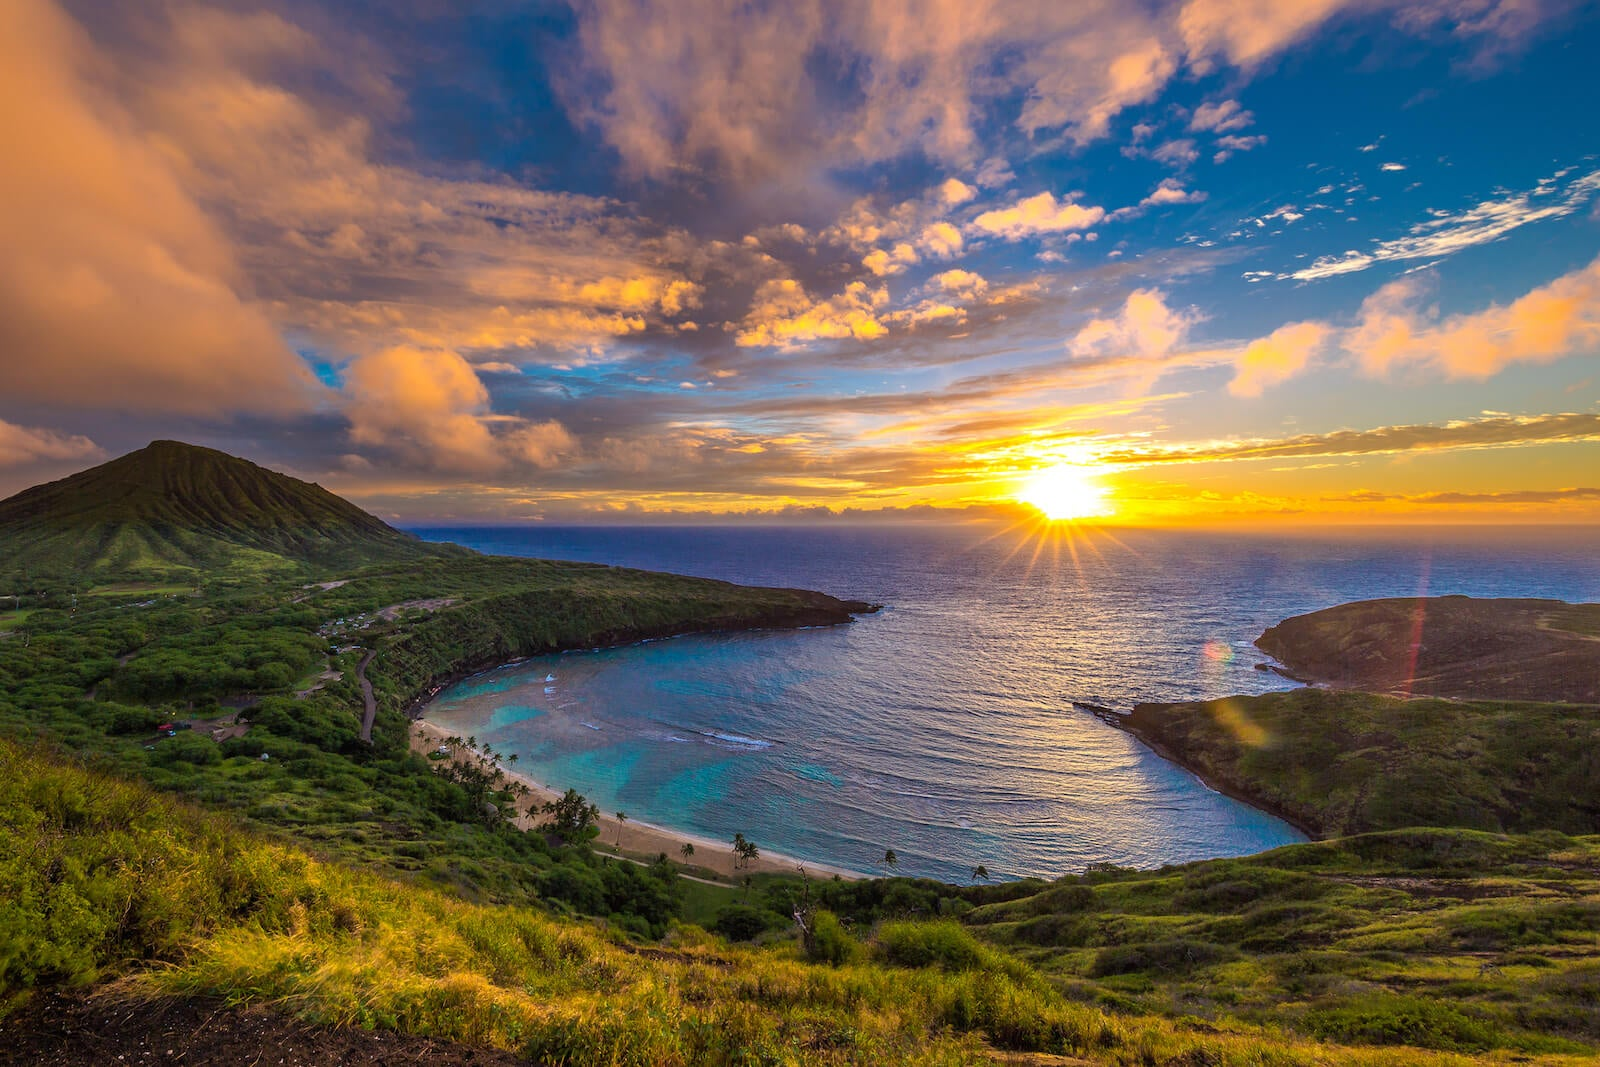 Best ways to use Citi ThankYou points: Save on flights to Hawaii, Europe, and across the US